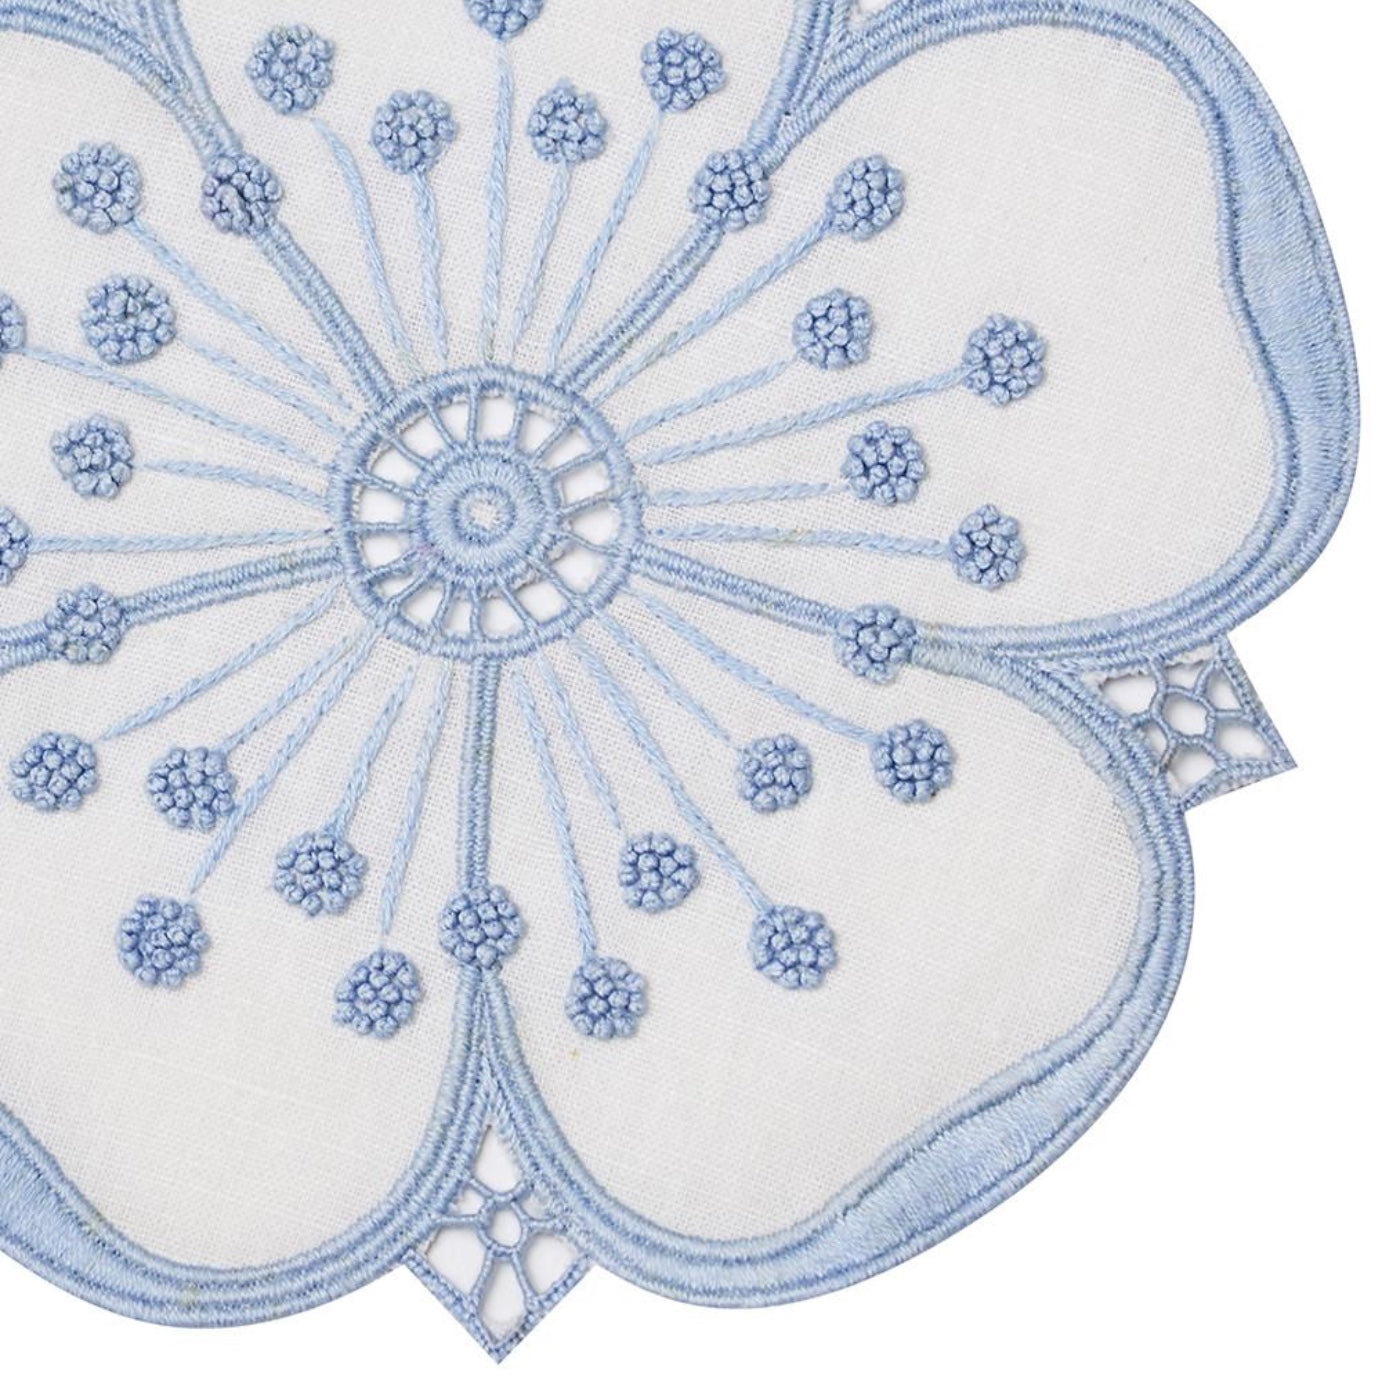 Blue & White Flower Cocktail Napkin Set - Maisonette Shop